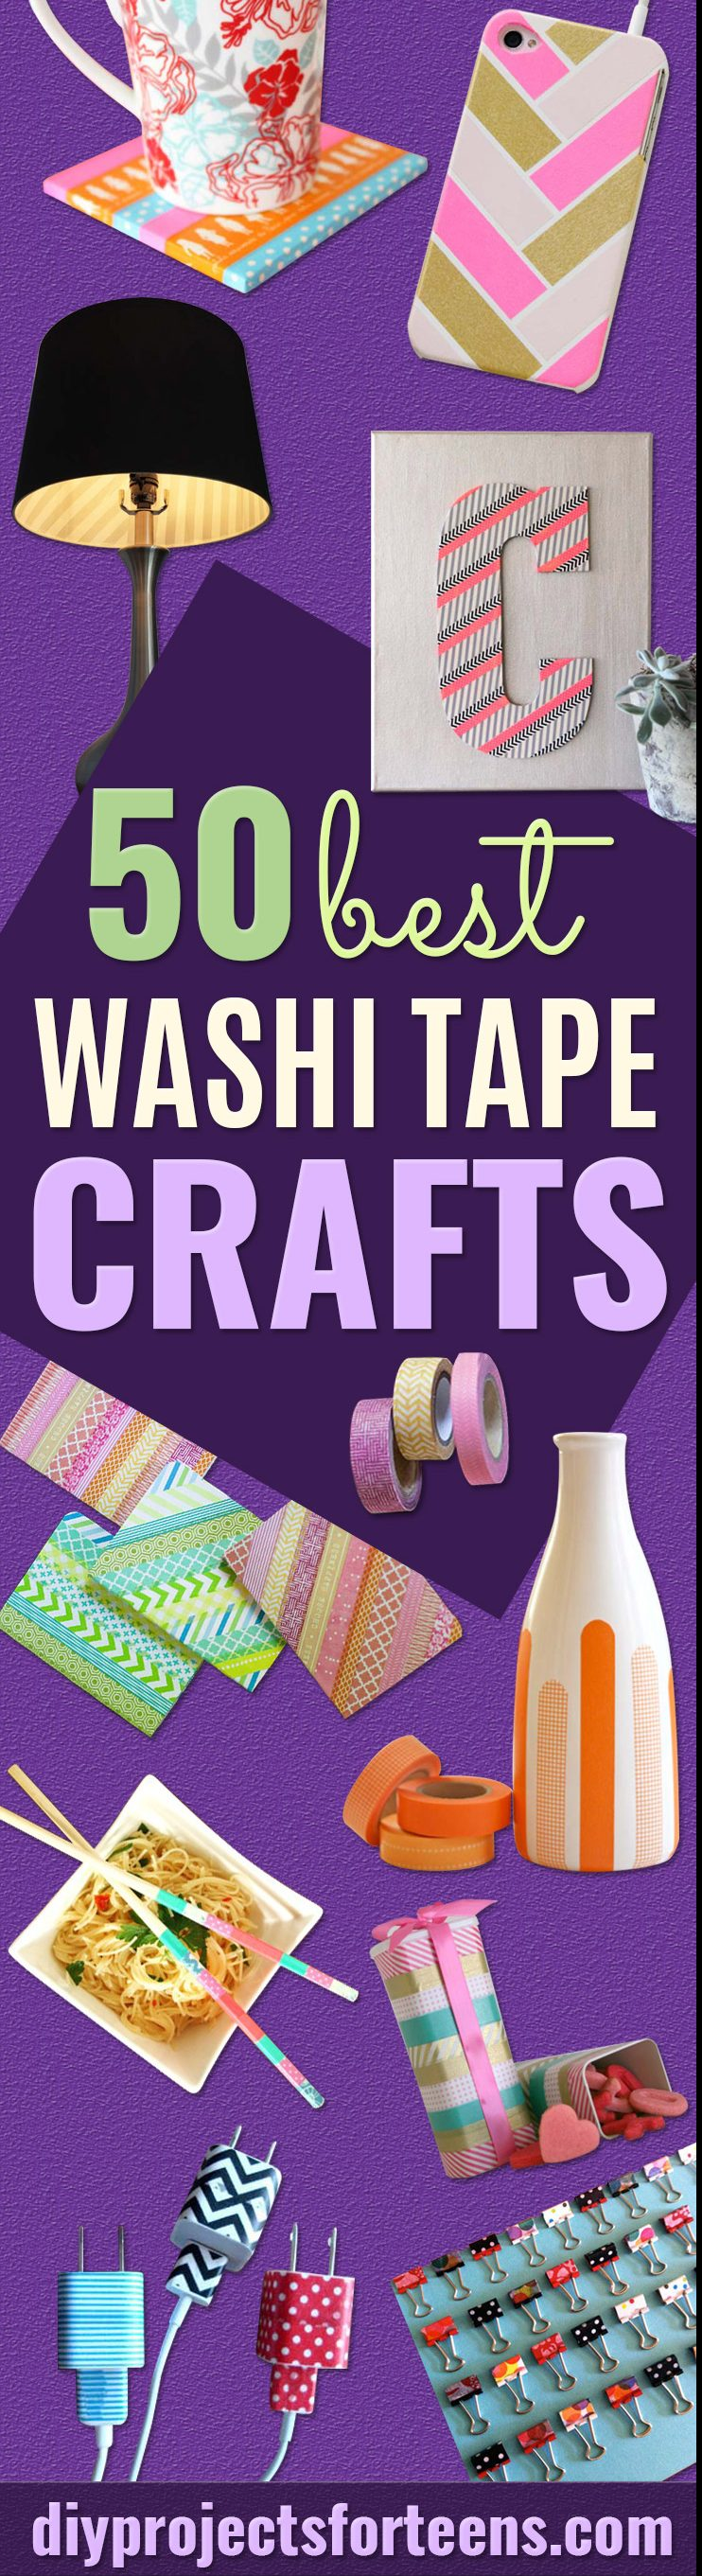 Washi Tape Crafts - Cool And Easy Teen Crafts and DIY Ideas With Washi Tape - Fun Art Ideas for Kids and Teenagers - Creative Things to Make With Washi Tapes - Colorful Arts and Crafts Ideas That Are Inexpensive to Make